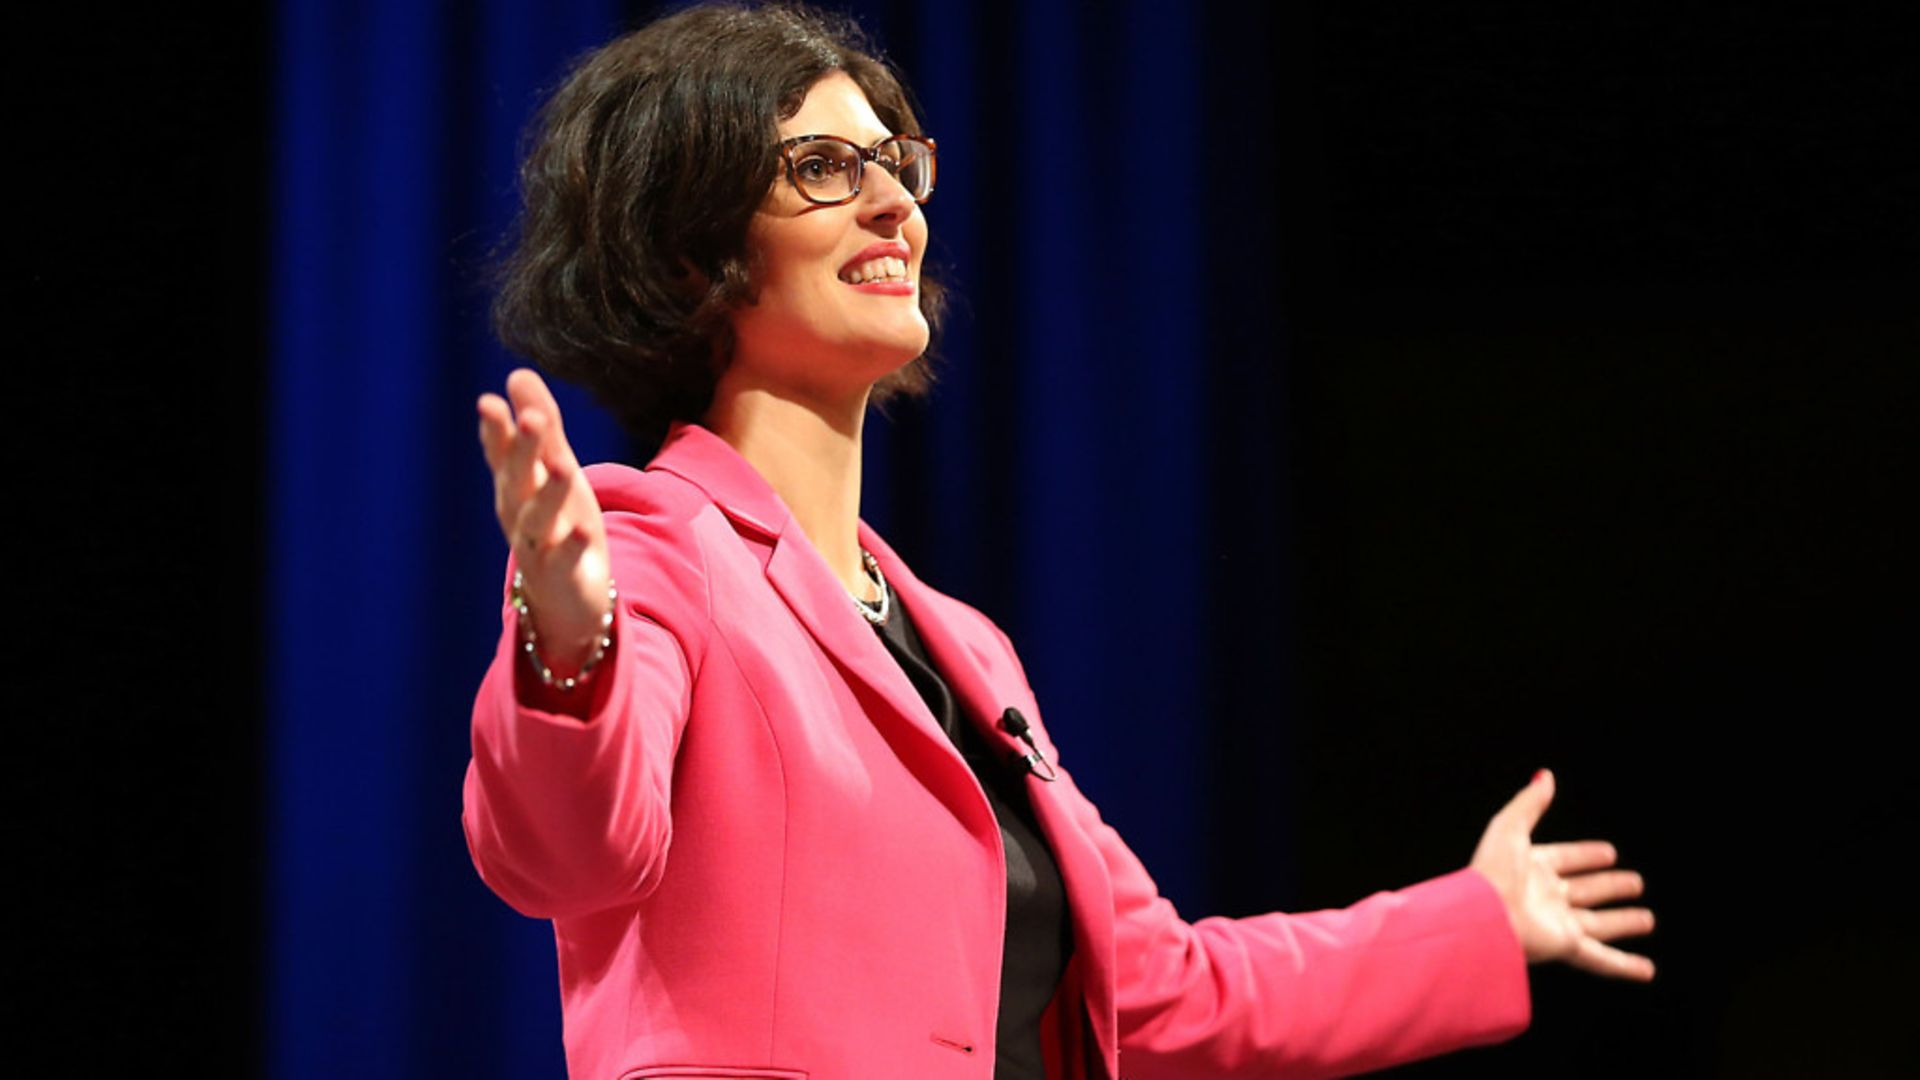 Layla Moran MP making a speech at a previous Lib Dem conference - Credit: PA Archive/PA Images